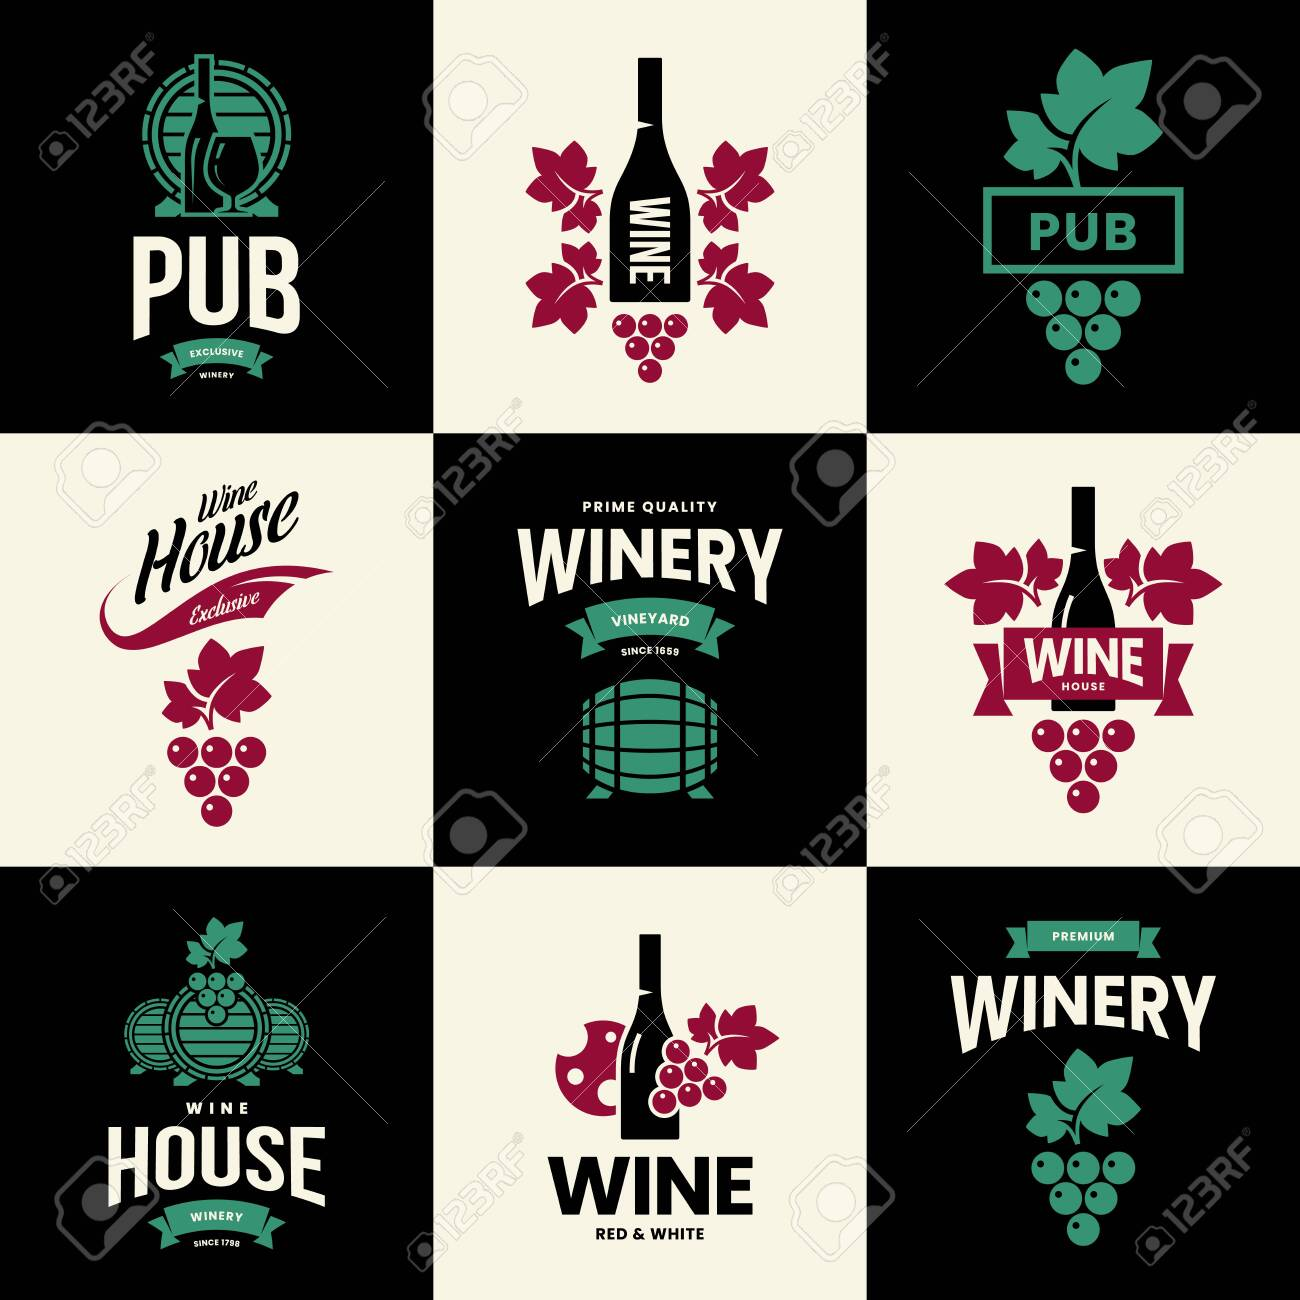 Modern wine vector isolated logo collection for tavern, restaurant, house, shop, store, club and cellar. Premium quality vinery logotype illustration set. Fashion brand badge design template bundle. - 120438792